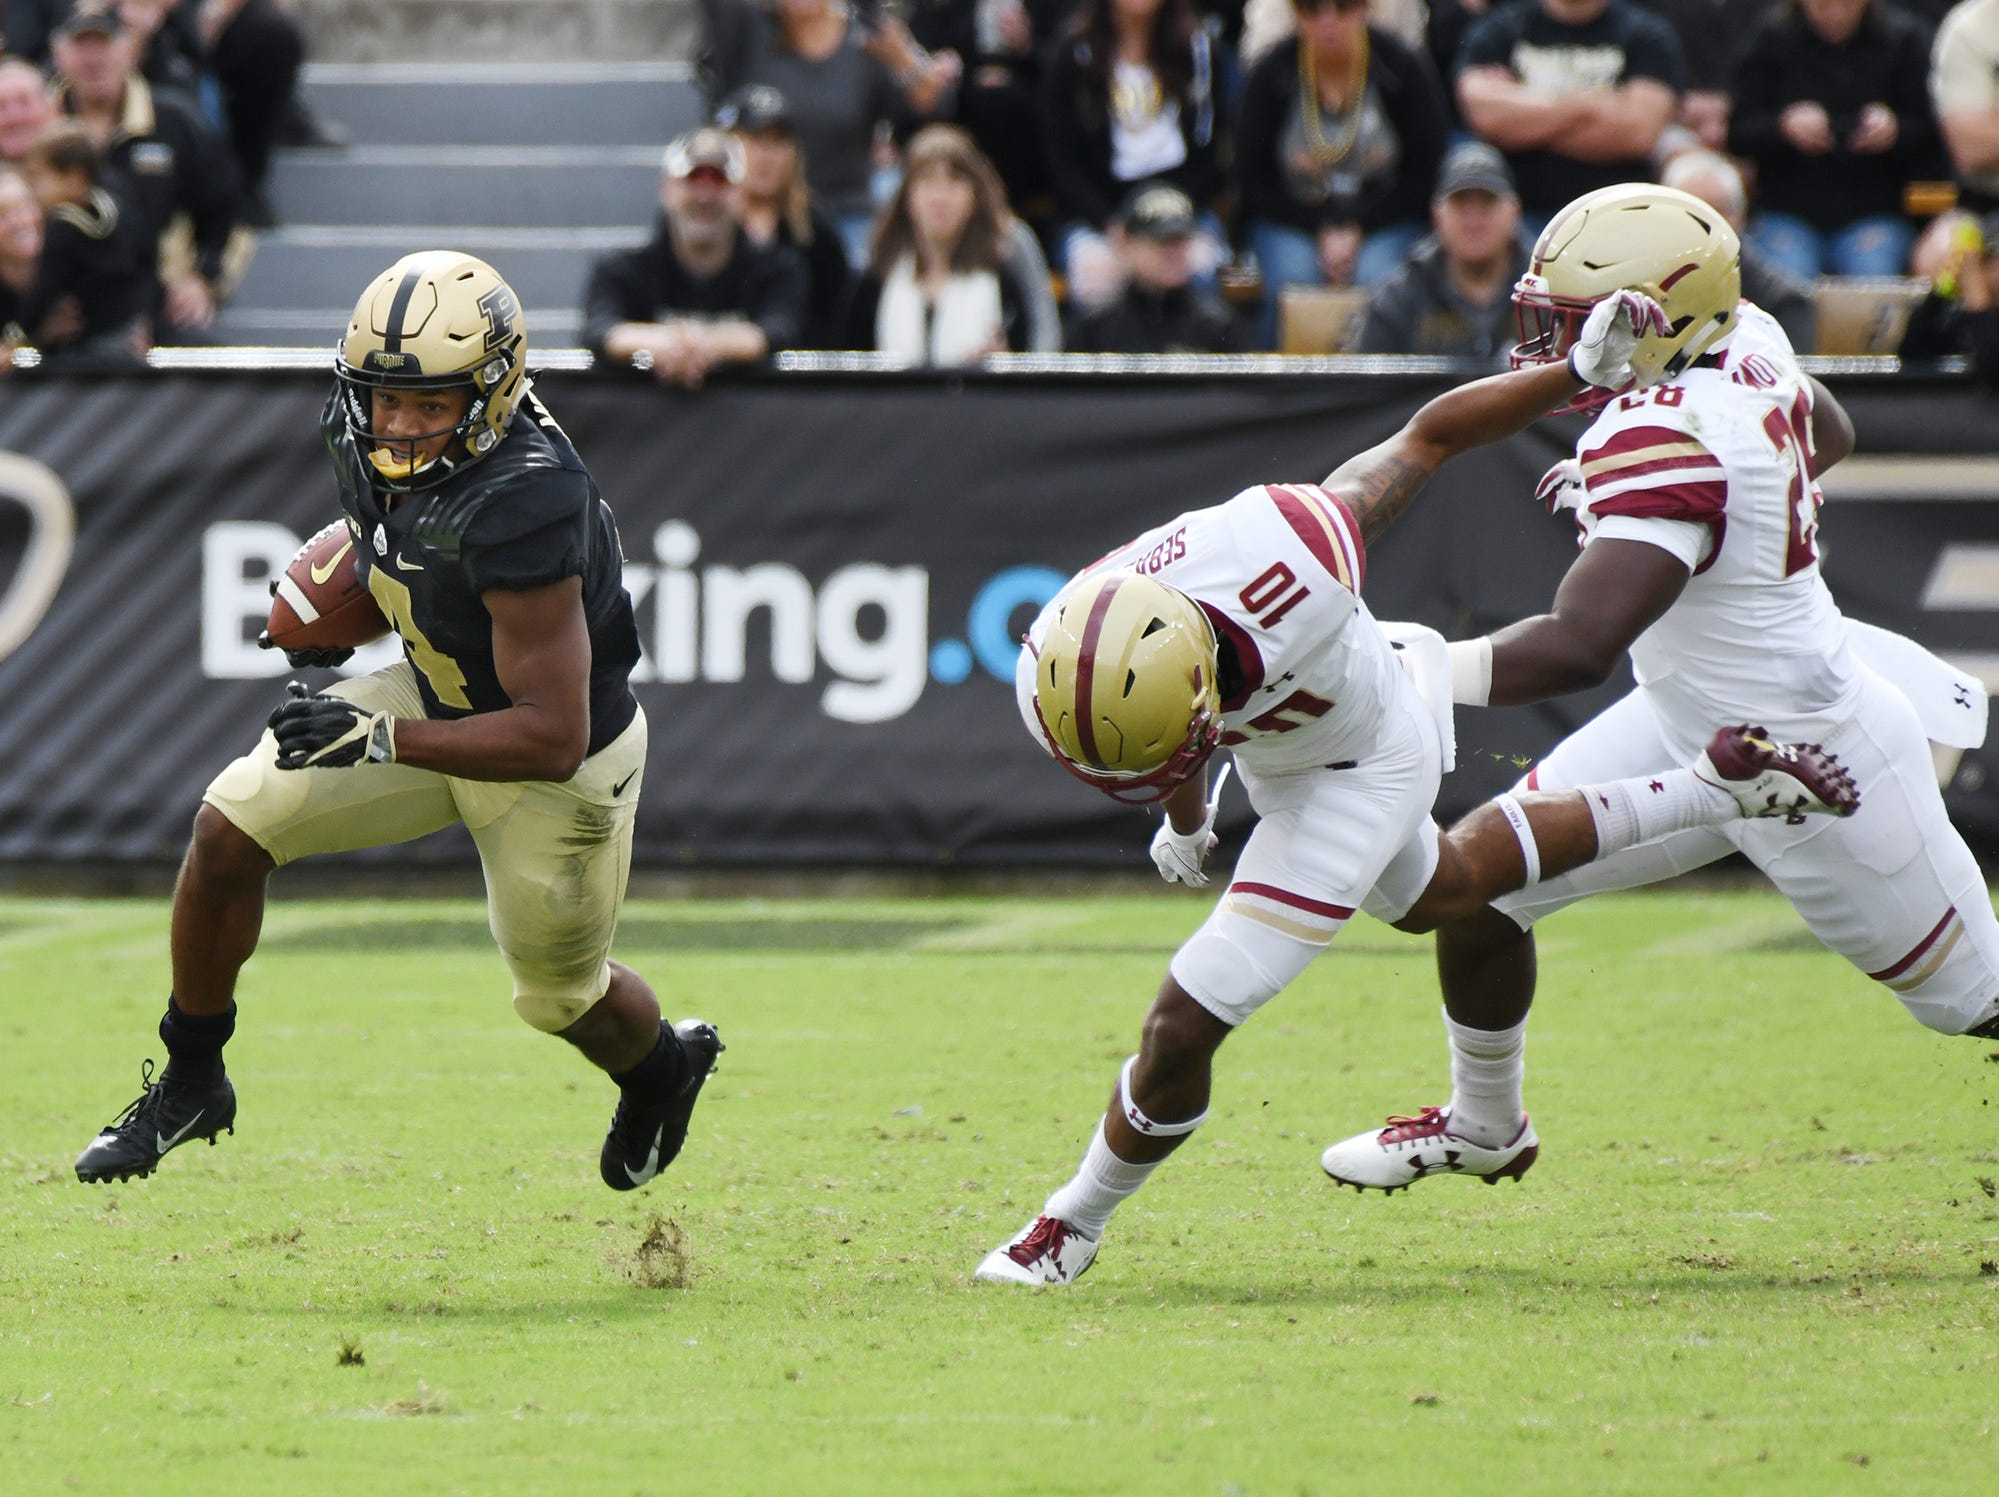 Rondale Moore of Purdue turns the corner on Brandon Sebastian and John Lamot of Boston College on a first half touchdown reception Saturday, September 22, 2018, in Ross-Ade Stadium.